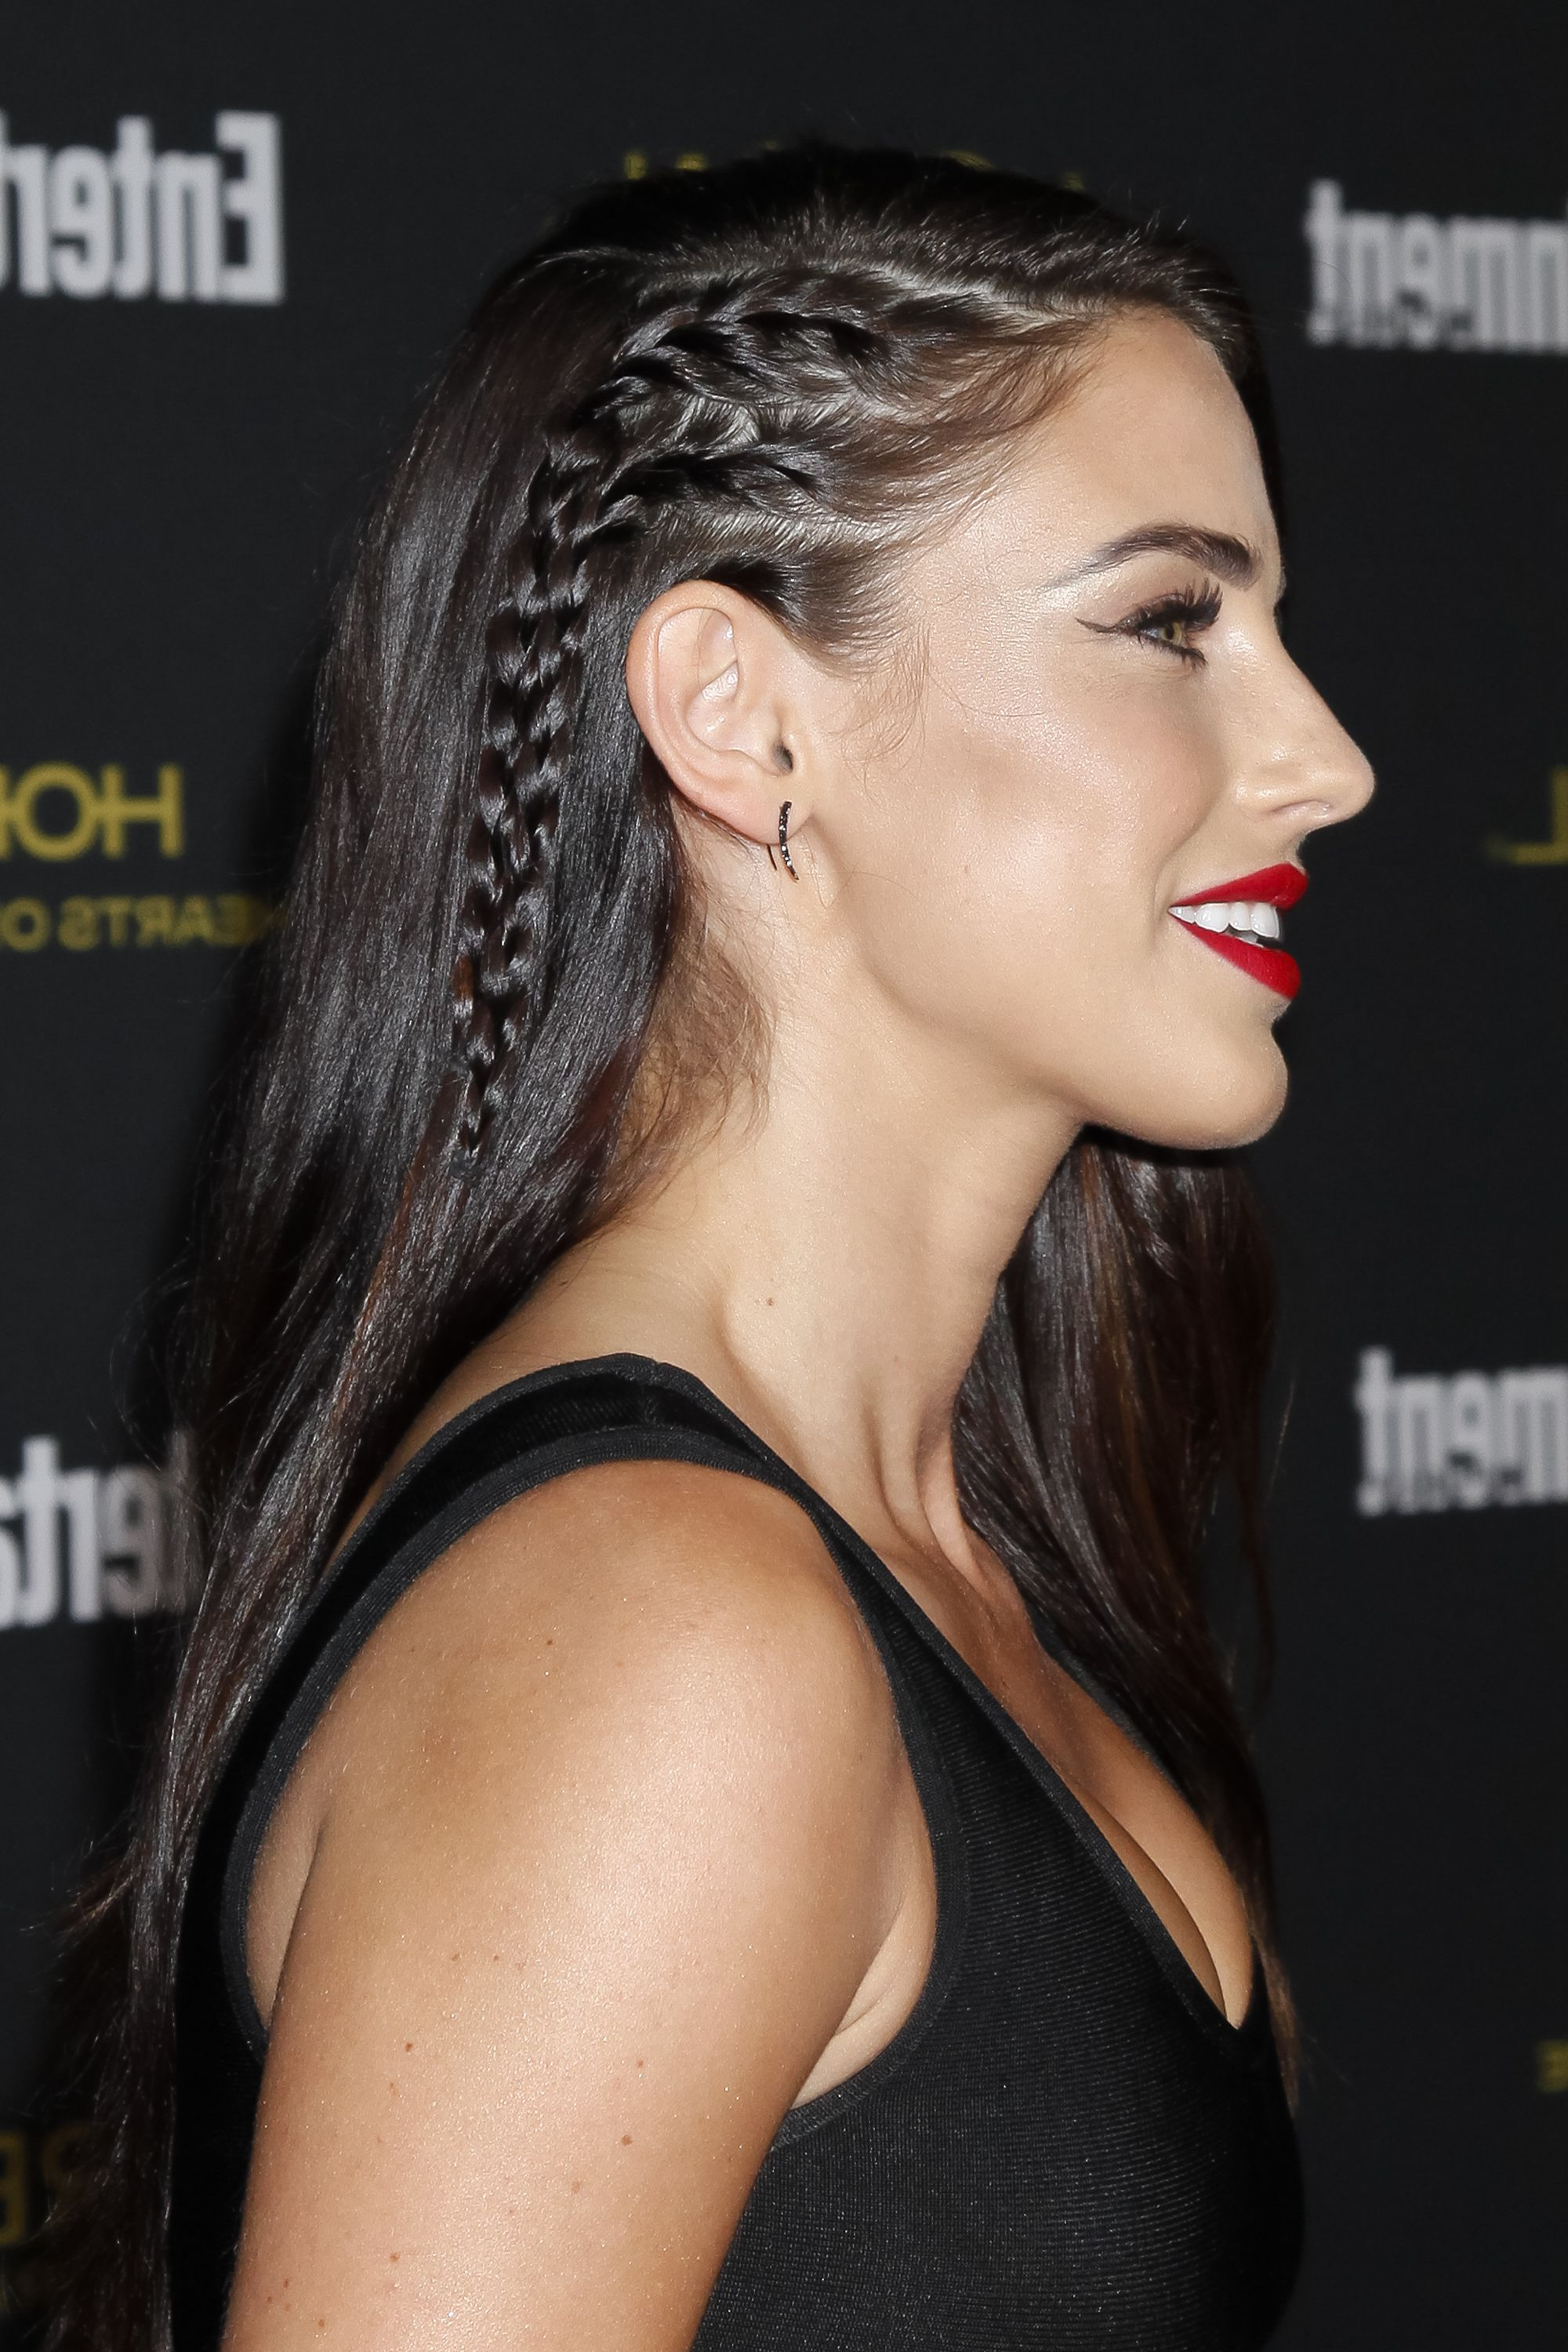 60 Easy Braided Hairstyles – Cool Braid How To's & Ideas In Current Dramatic Side Part Braided Hairstyles (View 6 of 20)